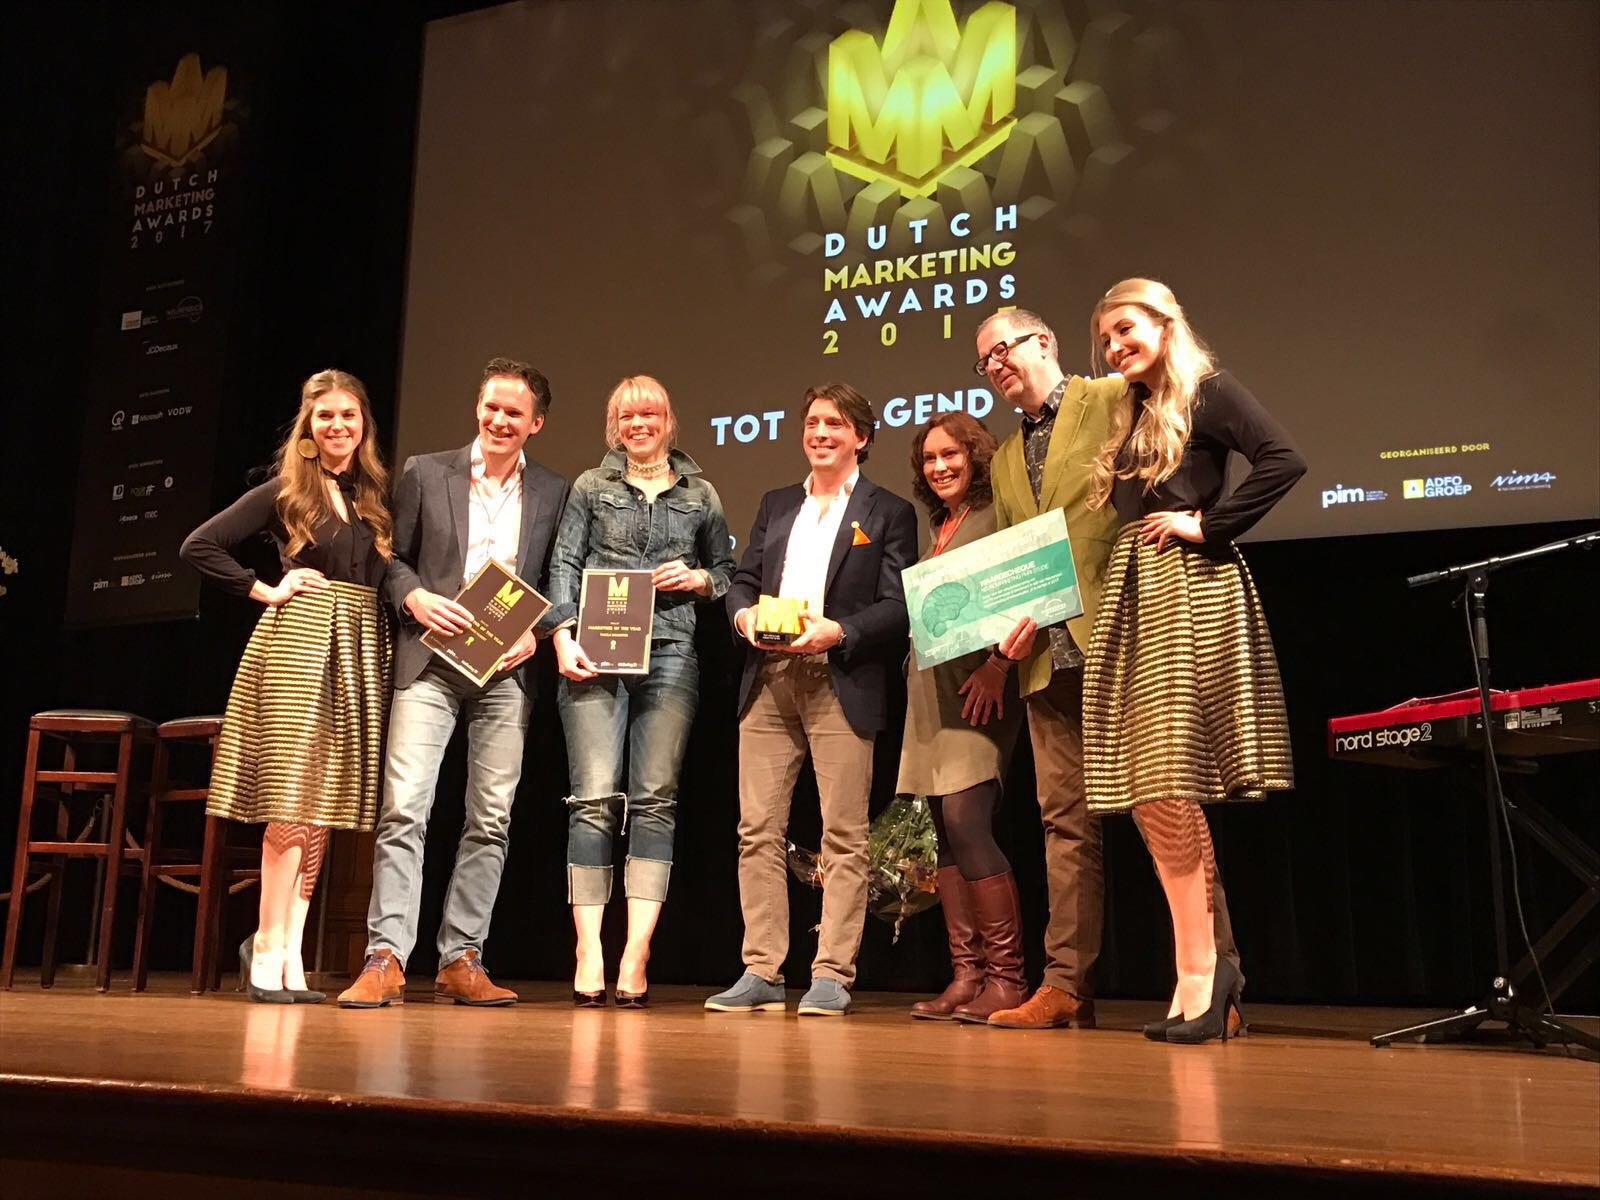 Pieter Zwart Marketeer of the Year 2017